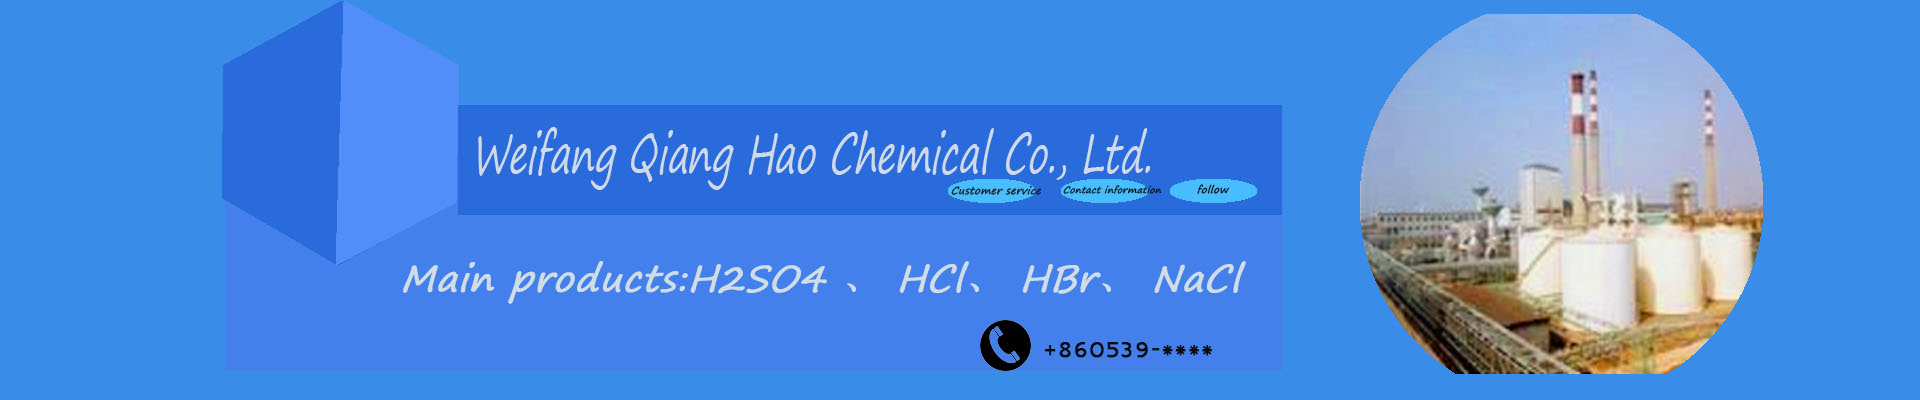 Weifang Qianghao Chemical Co.Ltd